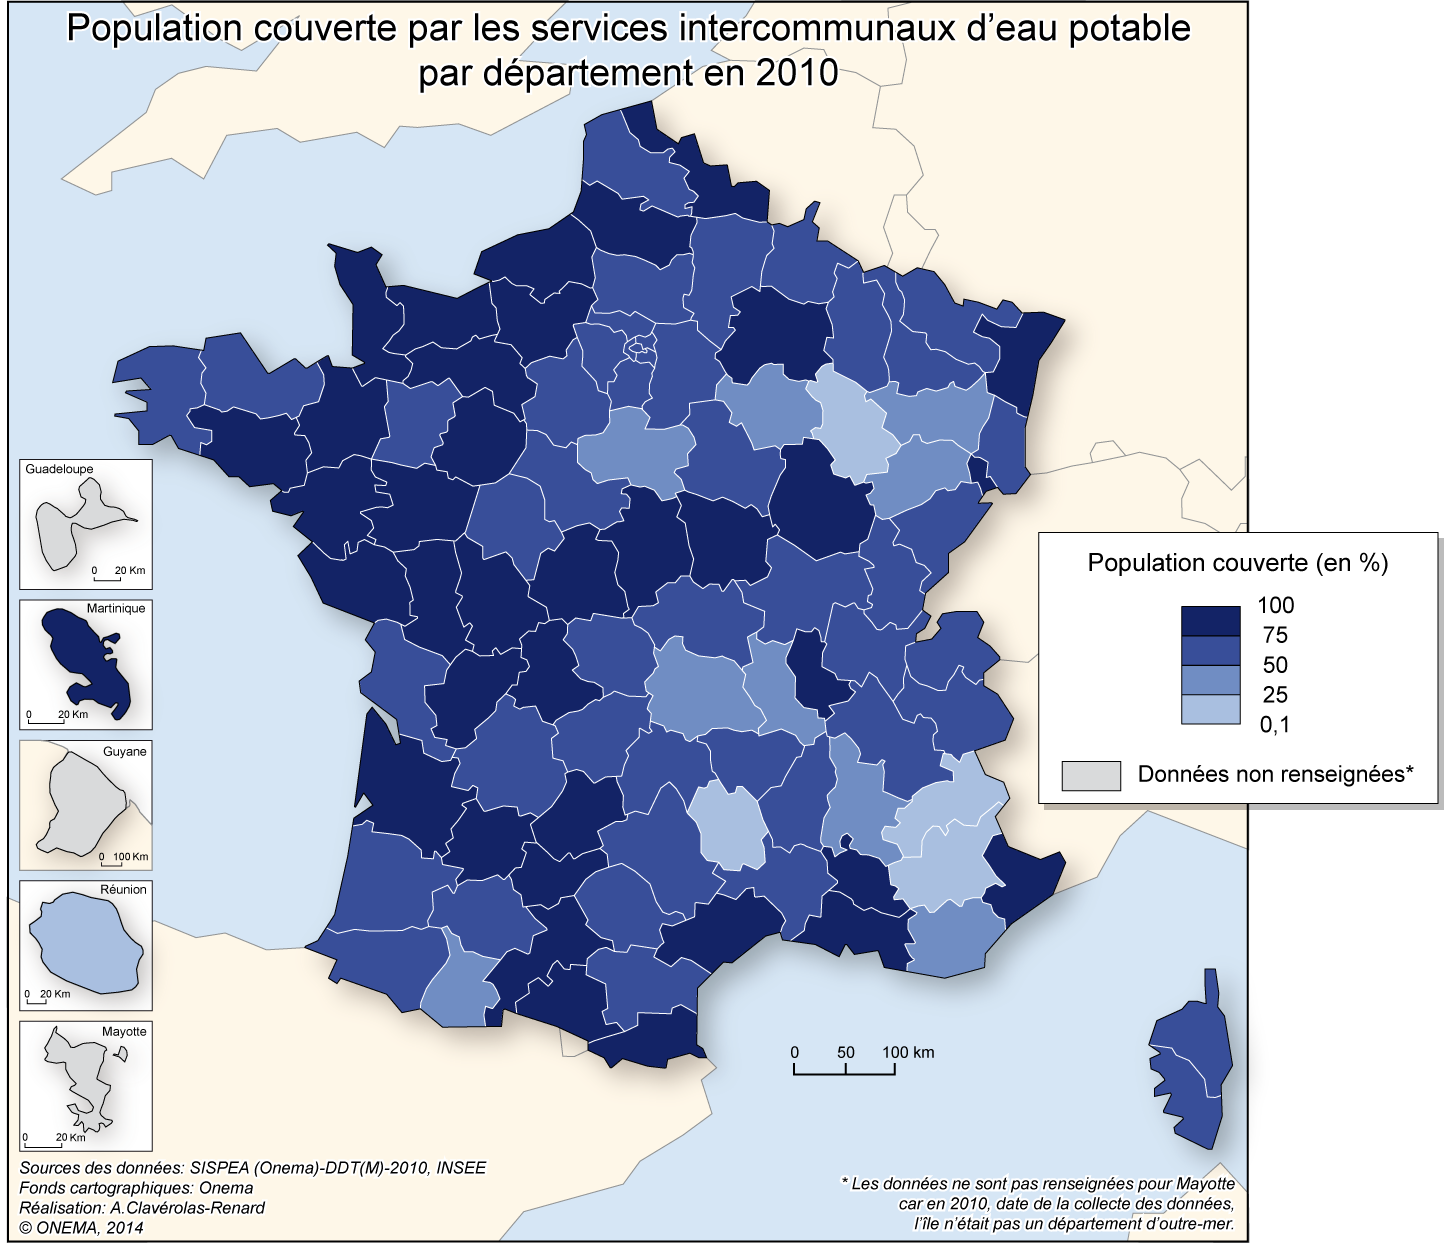 5)	Proportion de populations relevant d'un service intercommunal d'eau potable en 2010